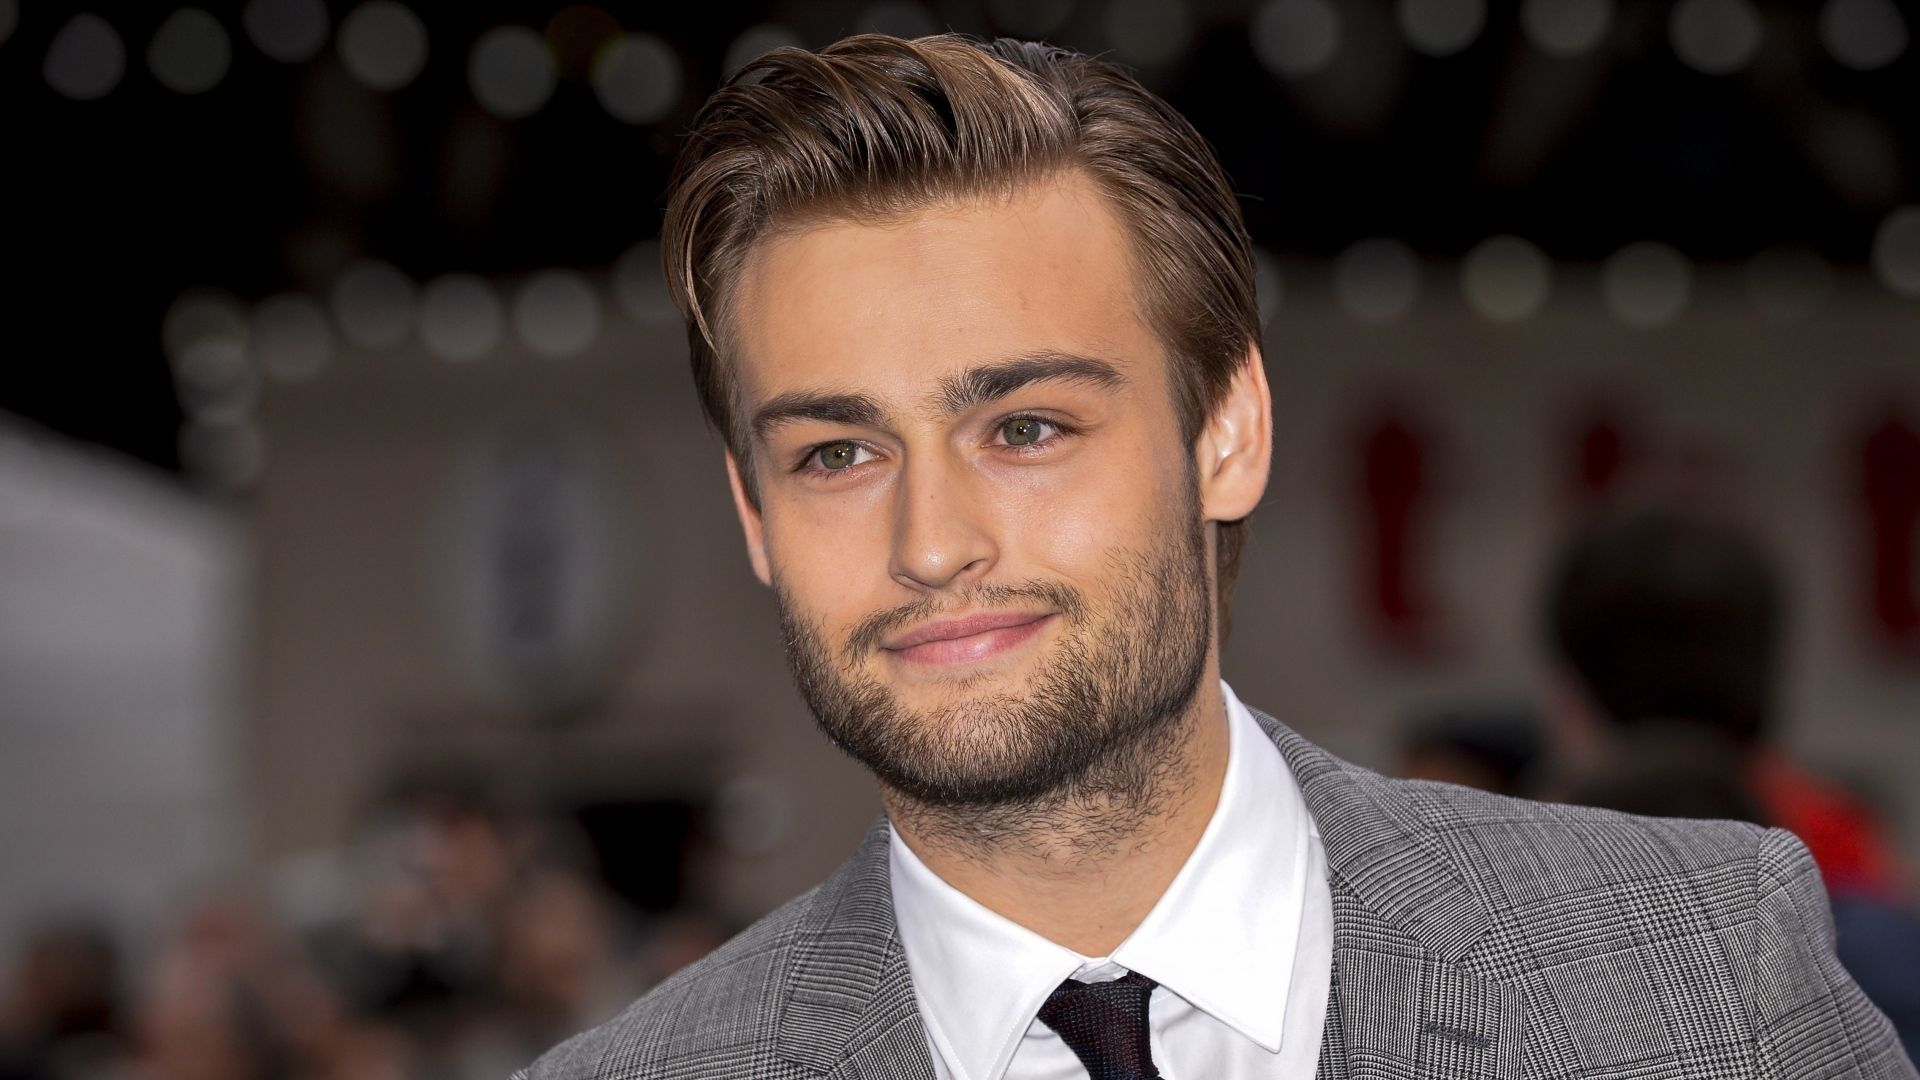 1920x1080 - Douglas Booth Wallpapers 25